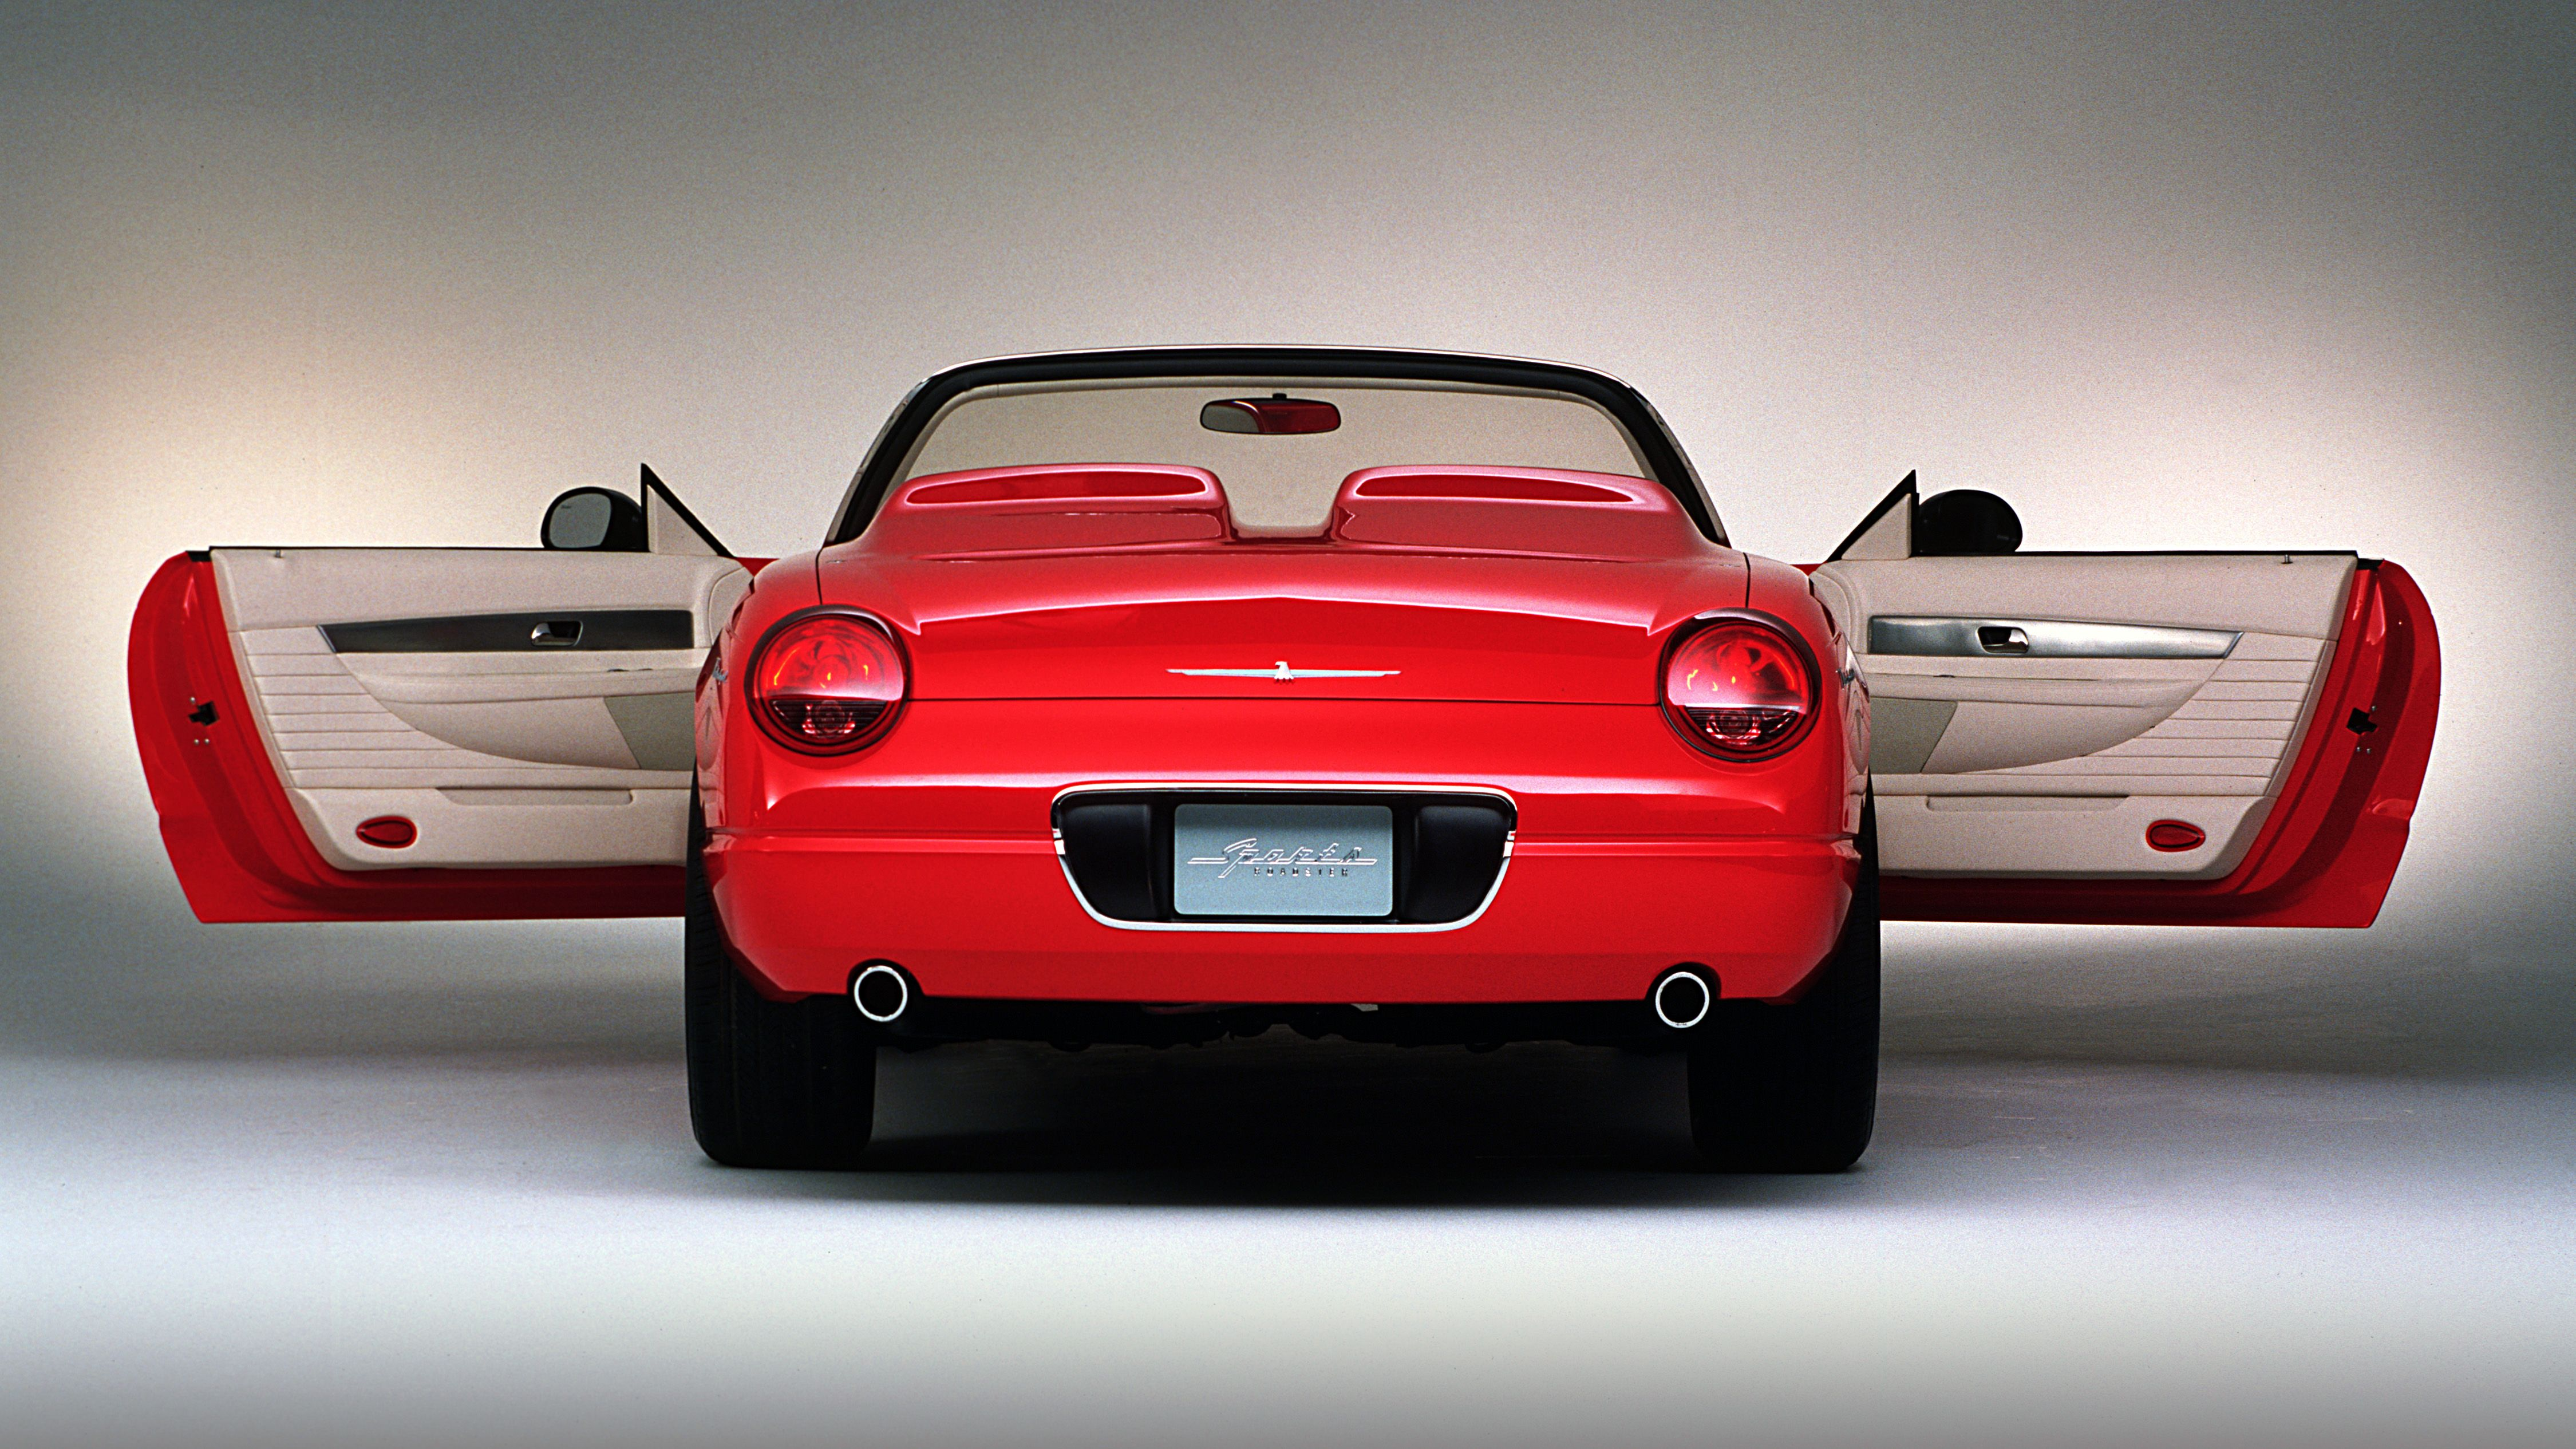 Ford Thunderbird Sports Roadster Concept Car 2001 Auto